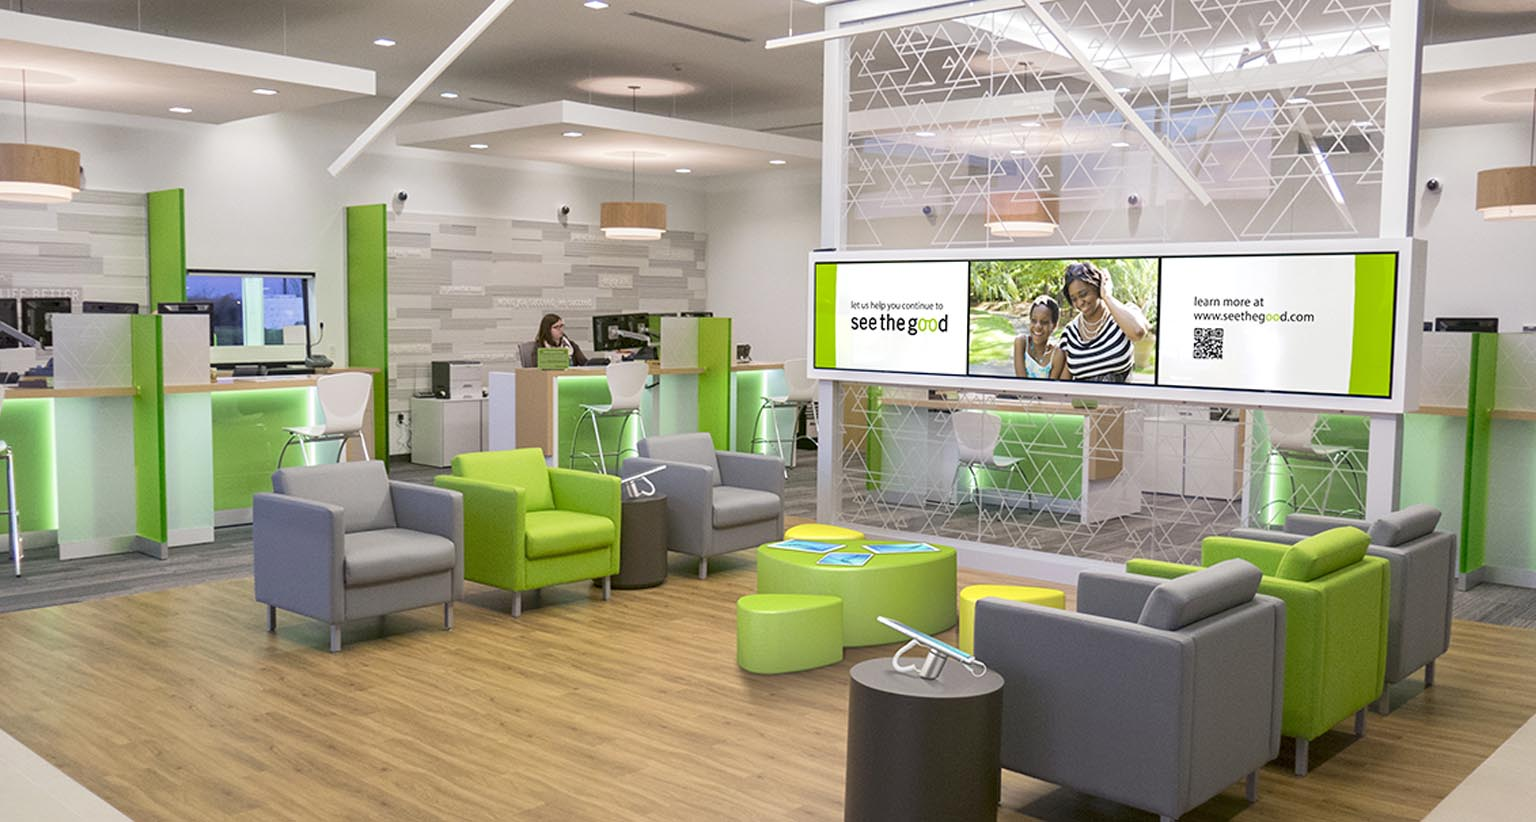 Design Bank Regions Bank Shikatani Lacroix Design Inc